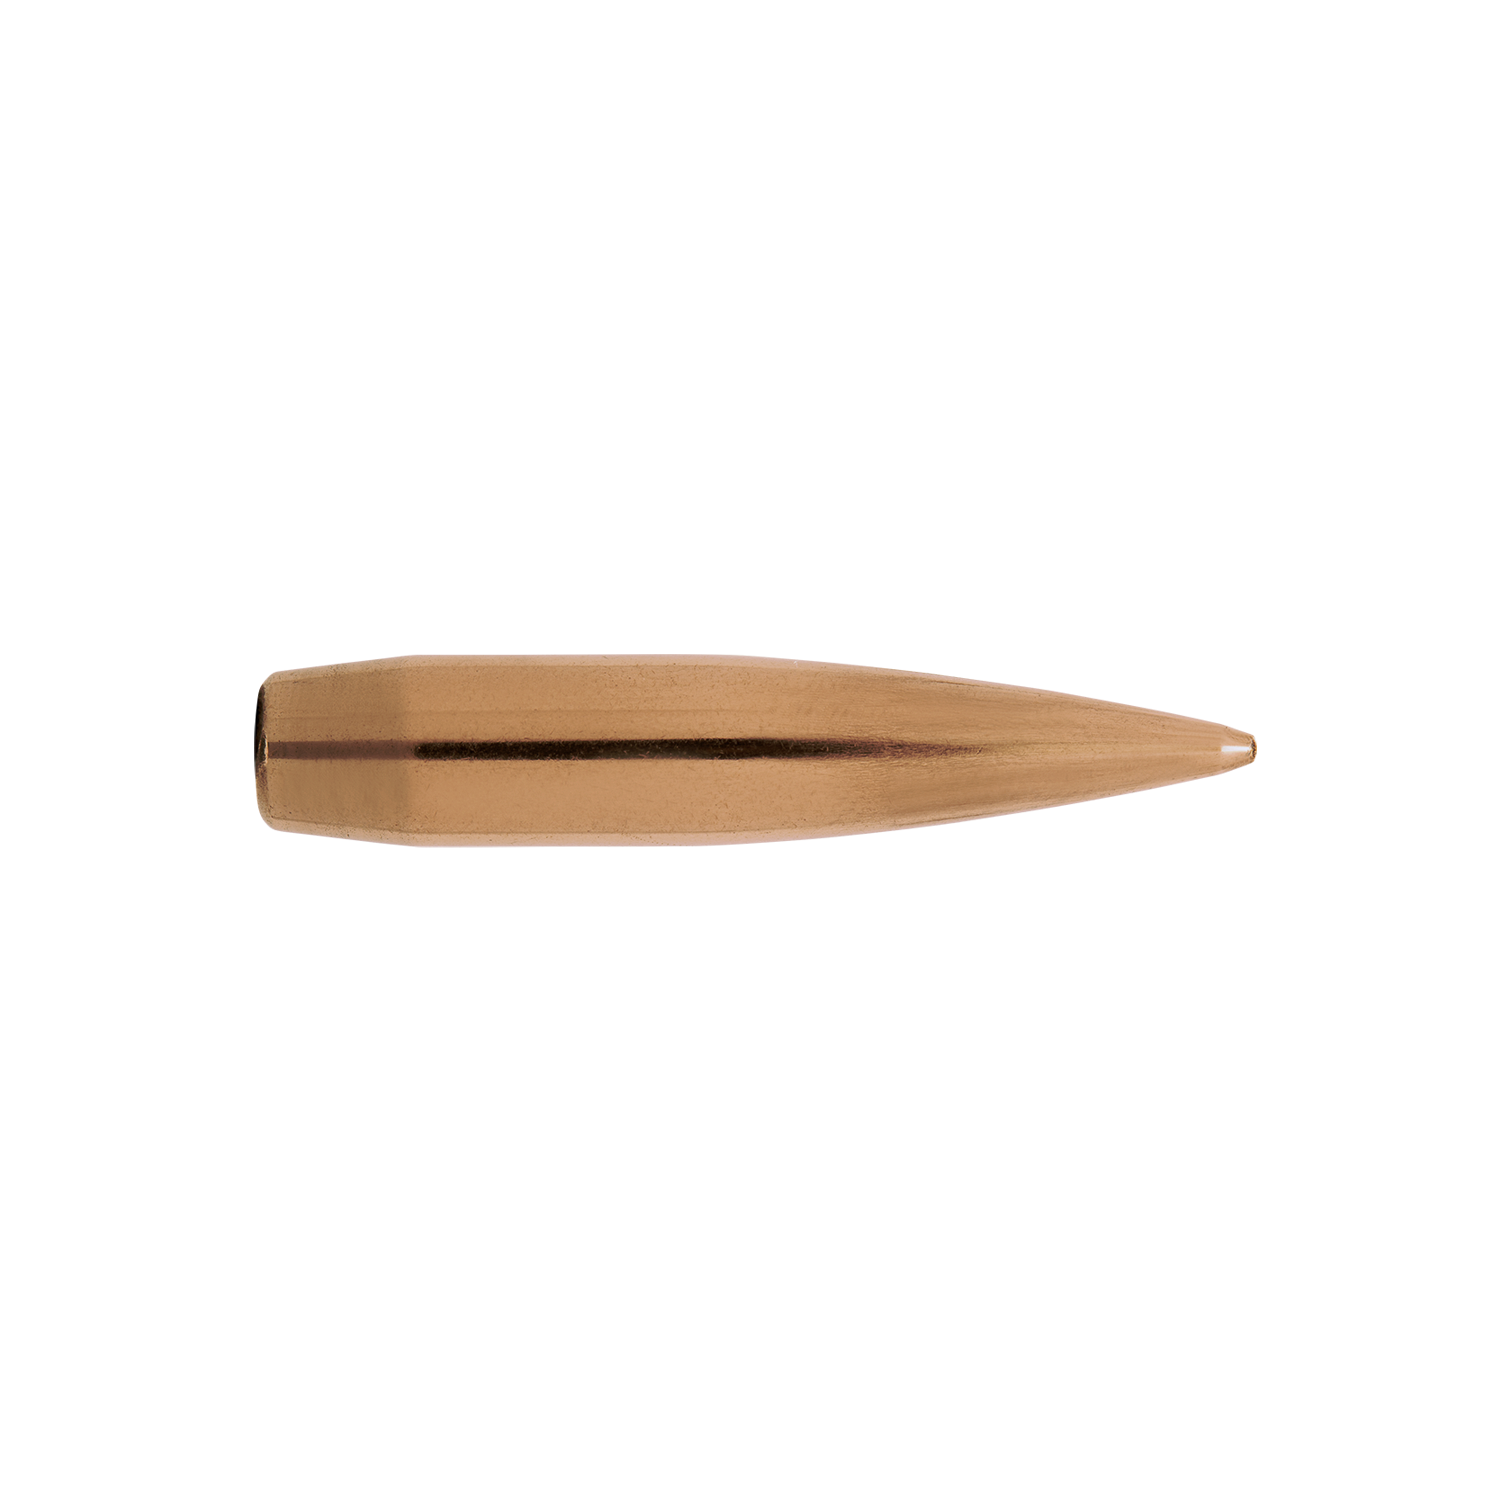 image of 30 Caliber 208 Grain Long Range Hybrid Target by Berger Bullets